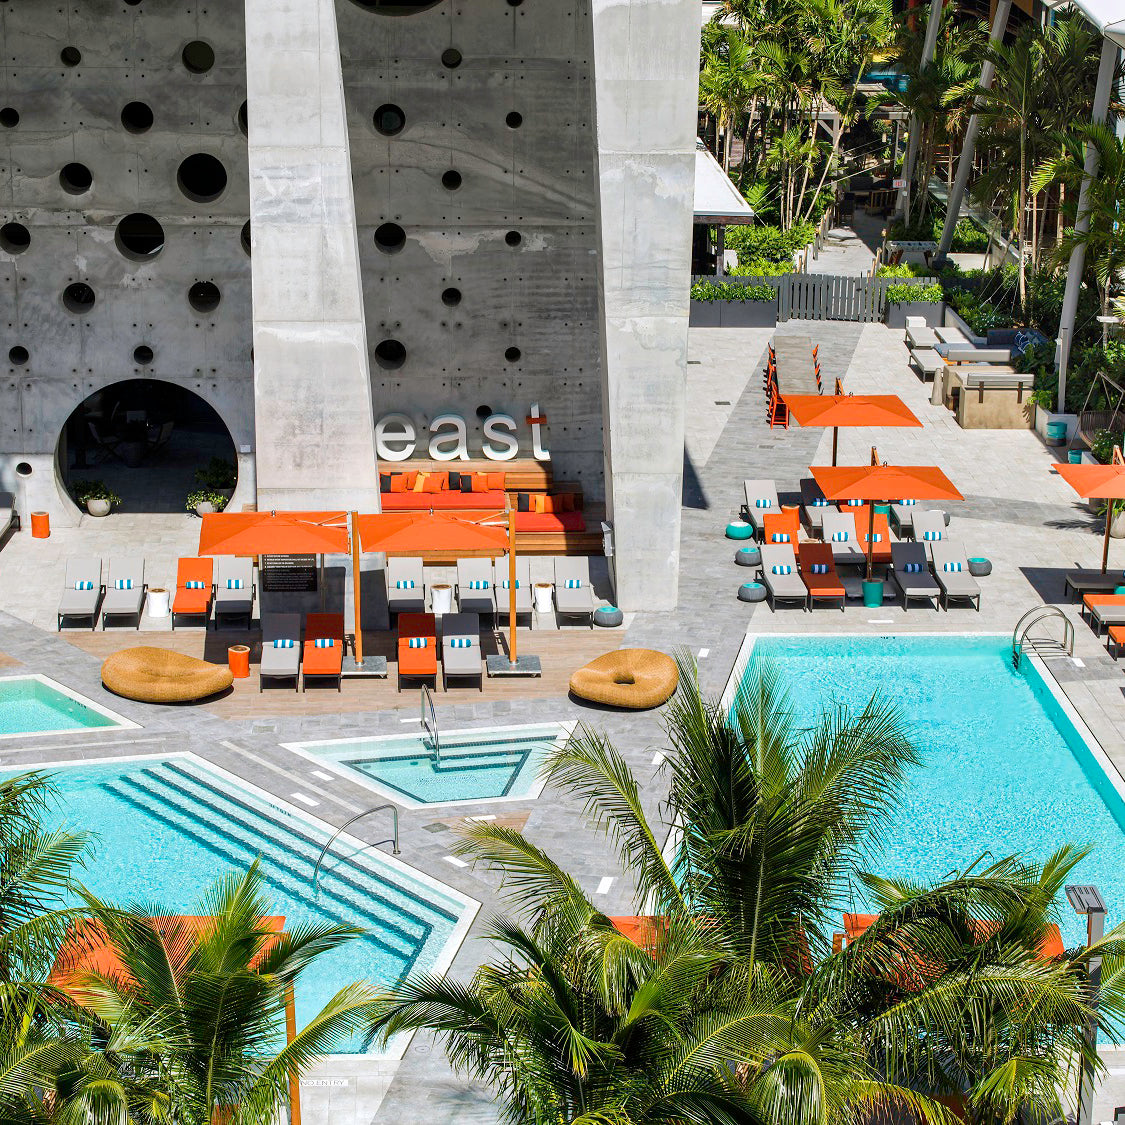 EAST, Miami - hotel outdoor space with four different pools, orange and grey lounge chairs, sun umbrellas, and palm trees